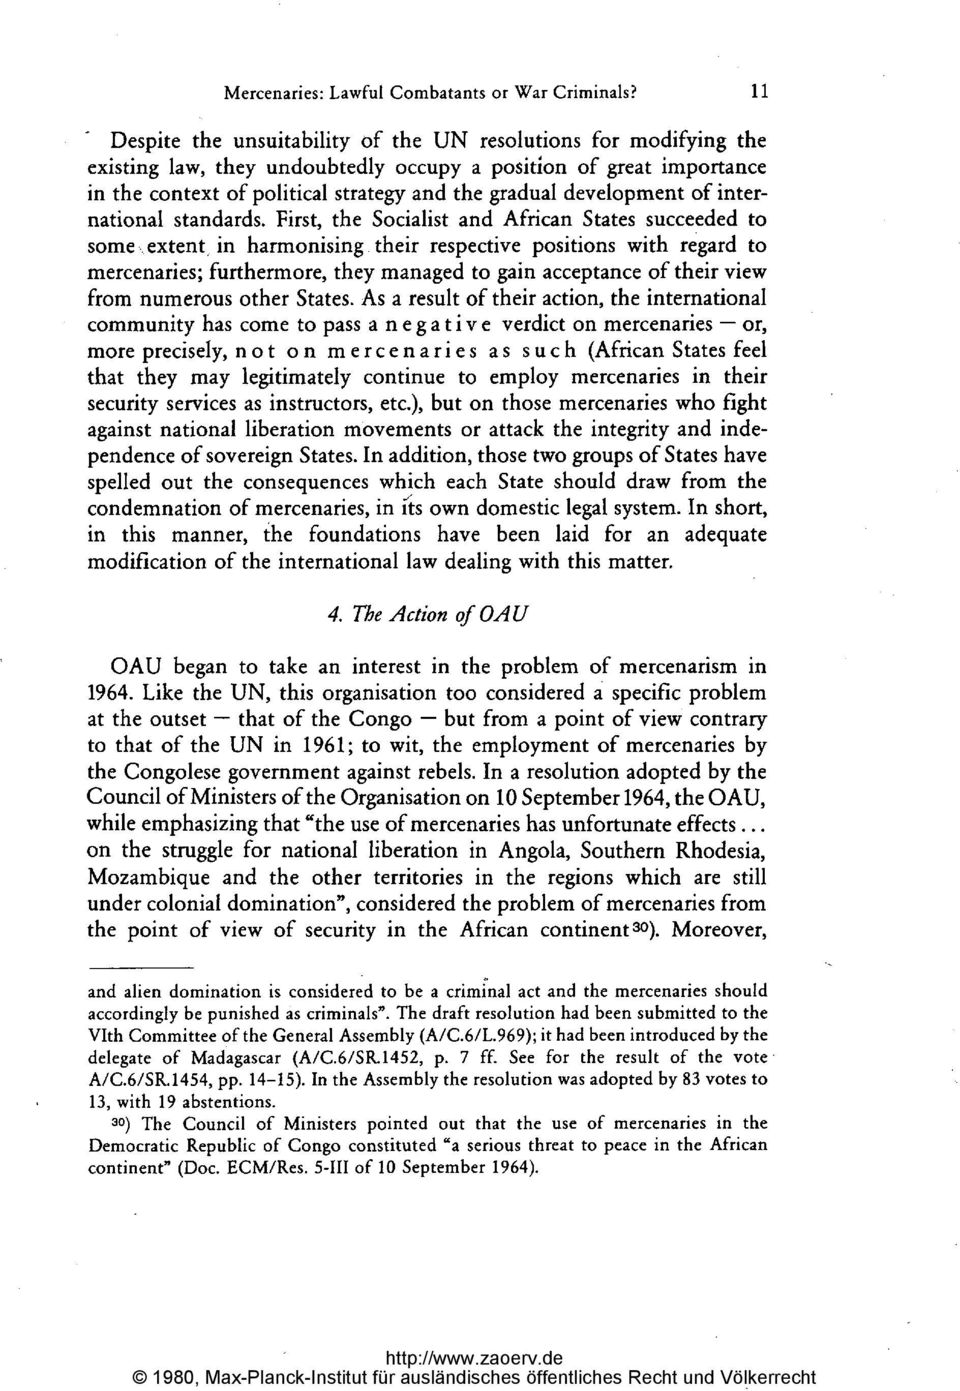 development of international standards. First, the Socialist and African States succeeded to some... extent, in harmonising.